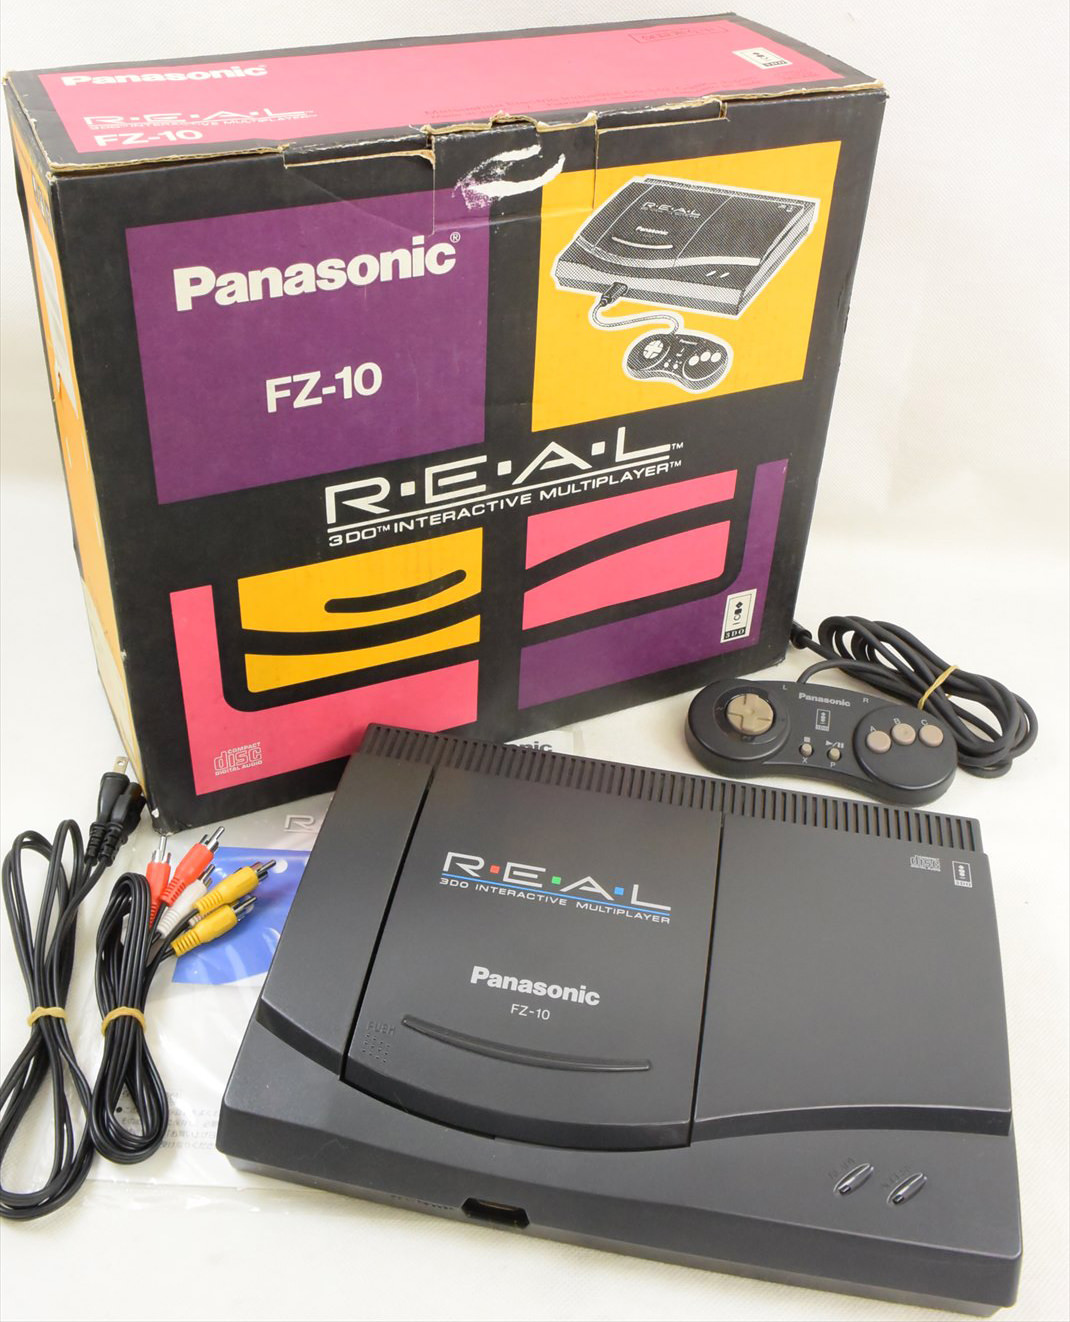 3DO REAL Console System FZ-10 Boxed GOOD Panasonic Tested ...